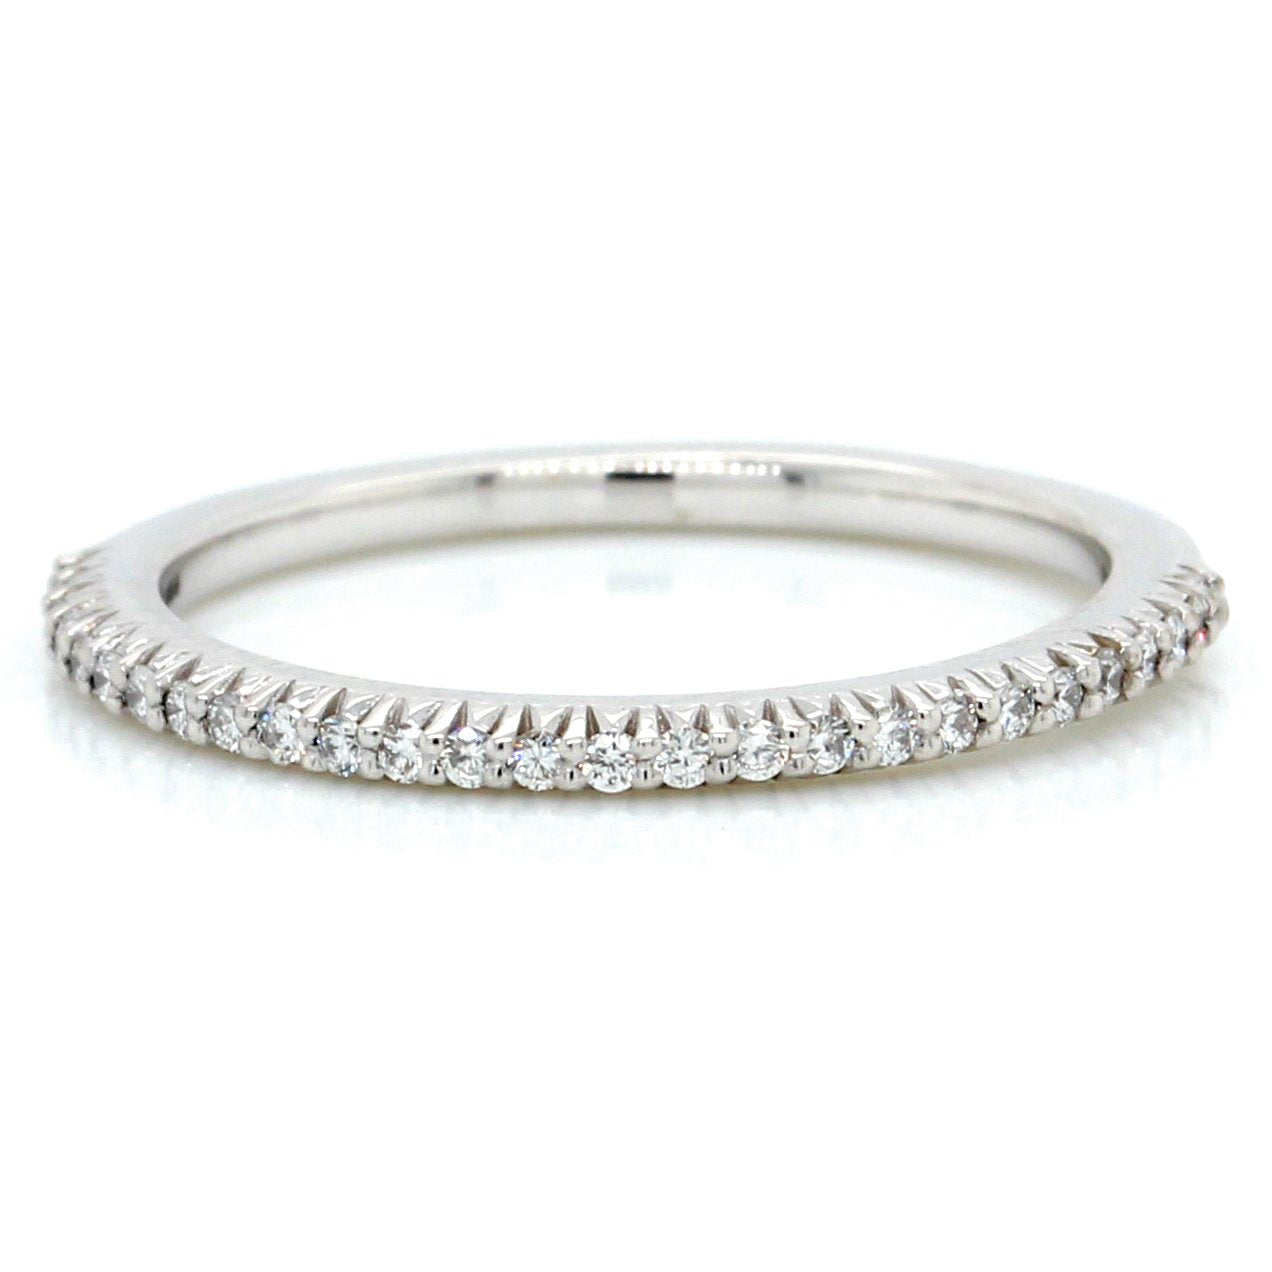 14K White Gold Bella Vita Diamond Band